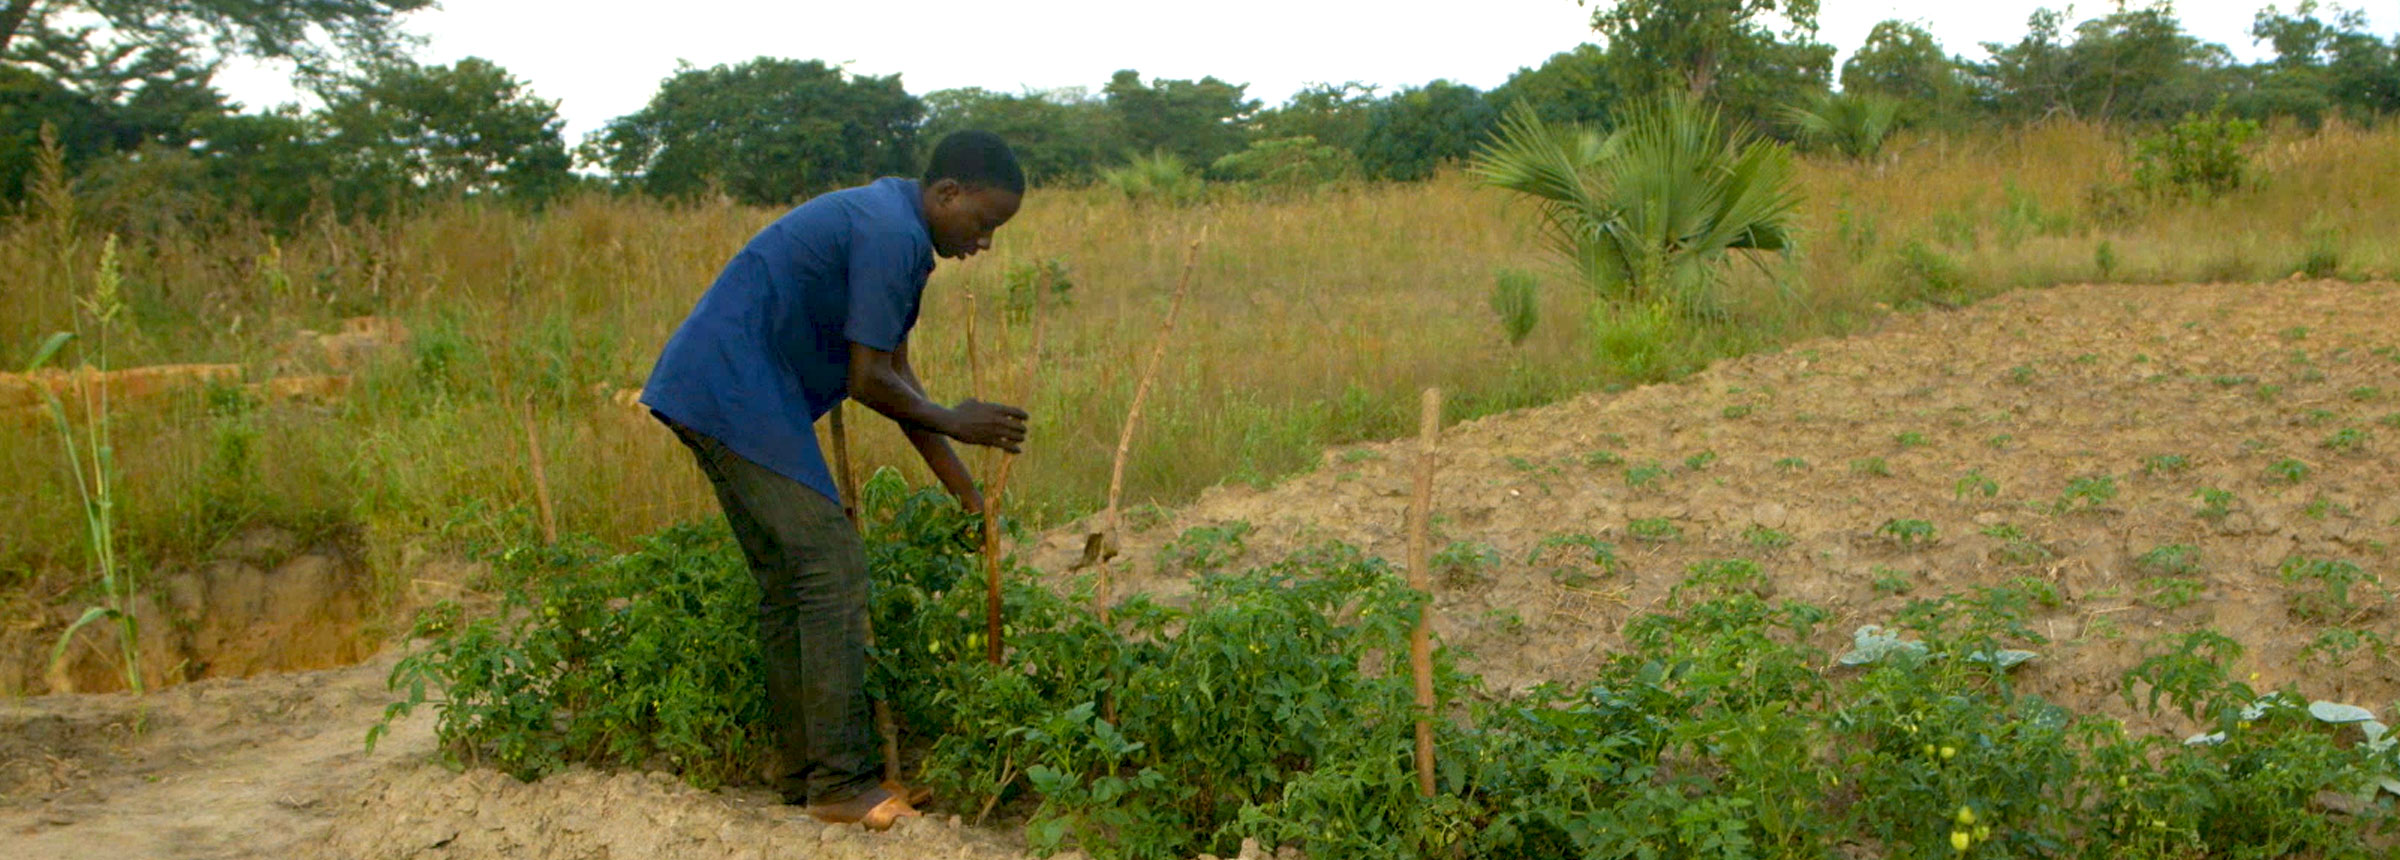 Youth works on agricultural plot